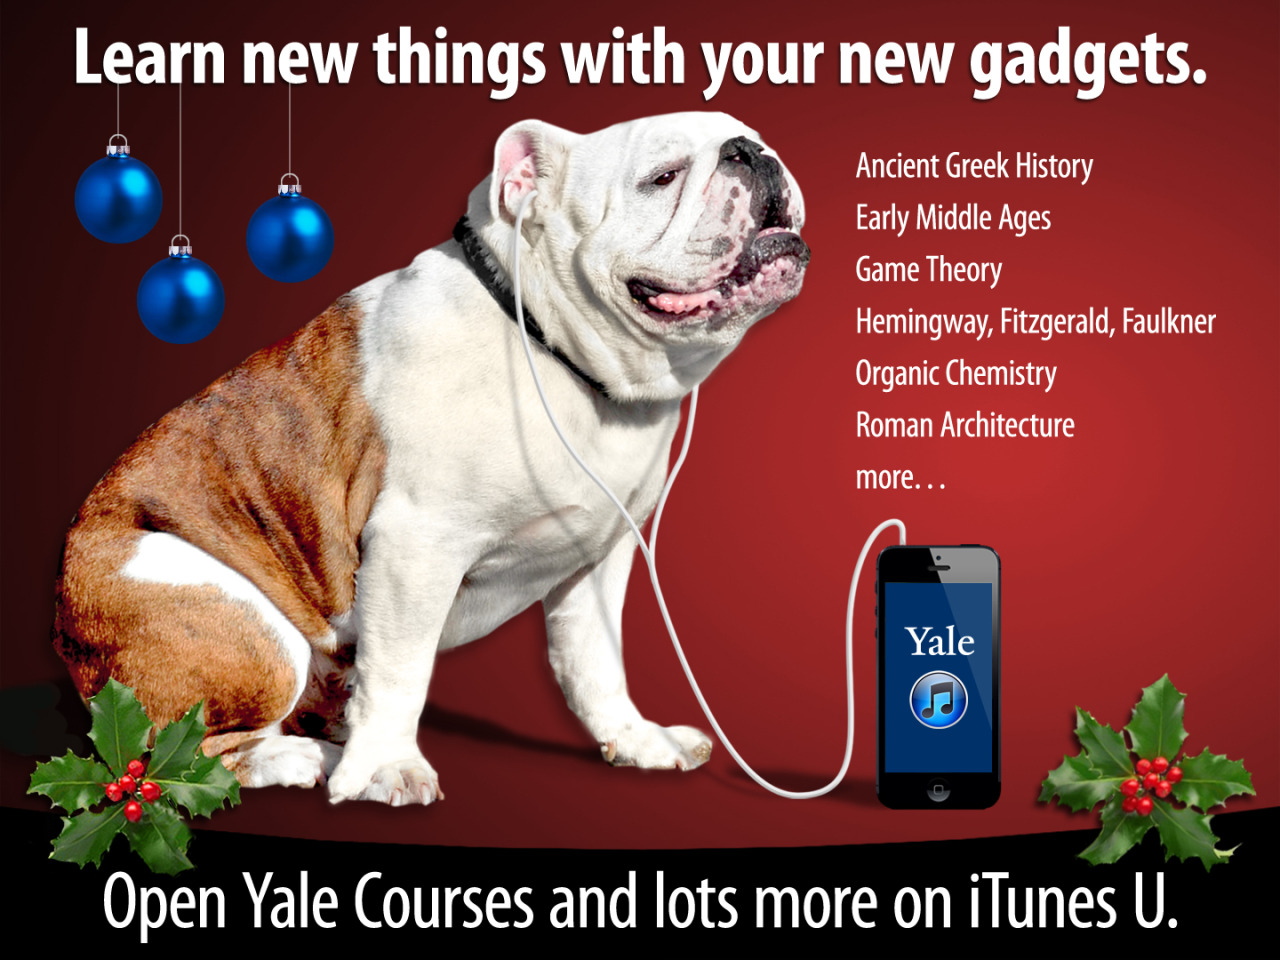 Load up your new gadgets with free Yale lectures on Roman Architecture, Organic Chemistry and GameTheory from Open Yale Courses on iTunes U! itunes.yale.edu.